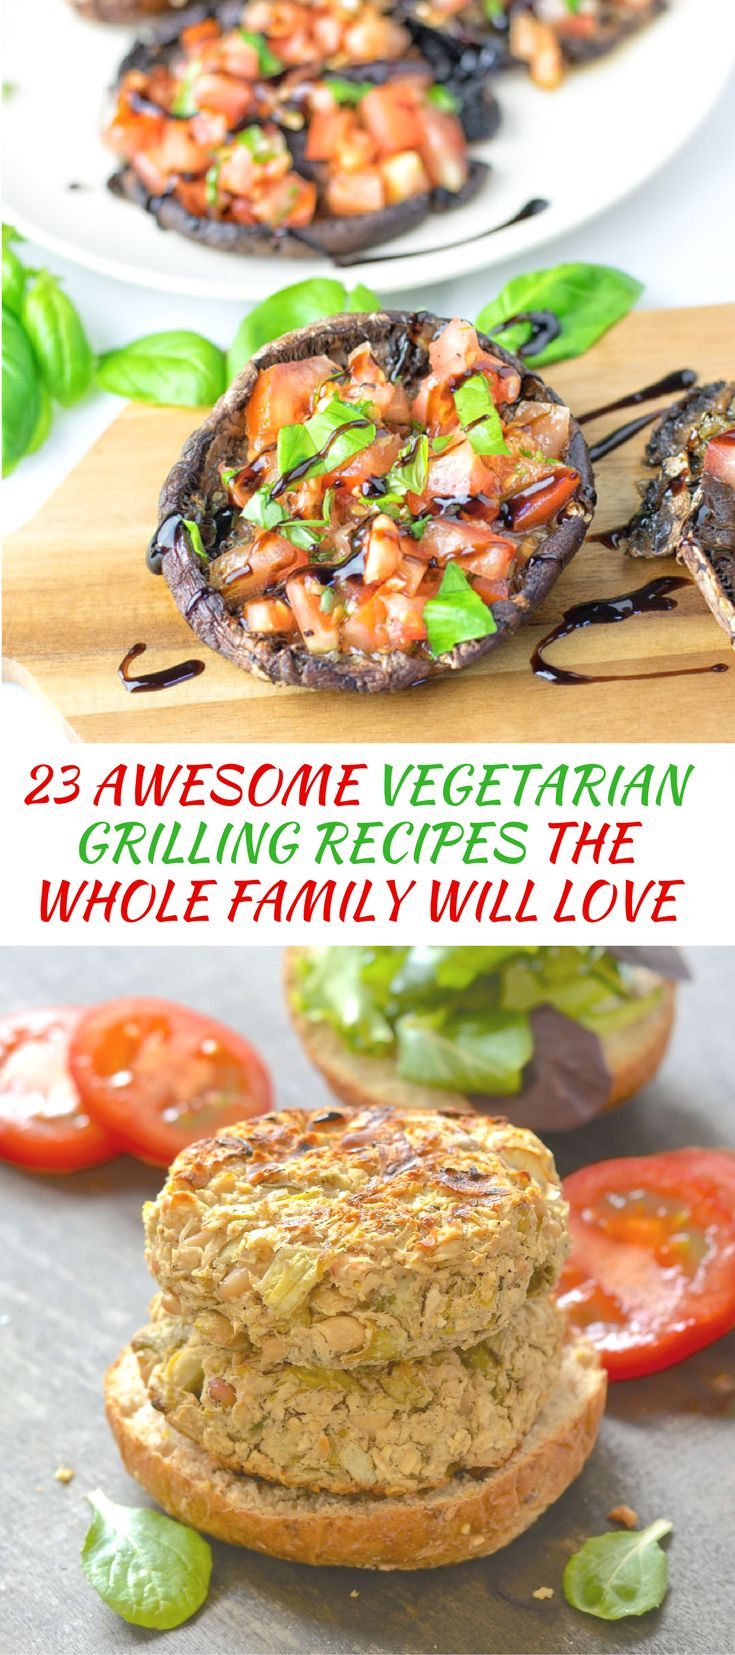 23 Awesome Vegetarian Grilling Recipes The Whole Family Will Love.Traditional cookouts are often meat-laden, but it is perfectly possible to enjoy an amazing array of grilled food with no meat involved, plus vegetarian grilling recipes have the added bonus of being healthier, more budget friendly and just as delicious.